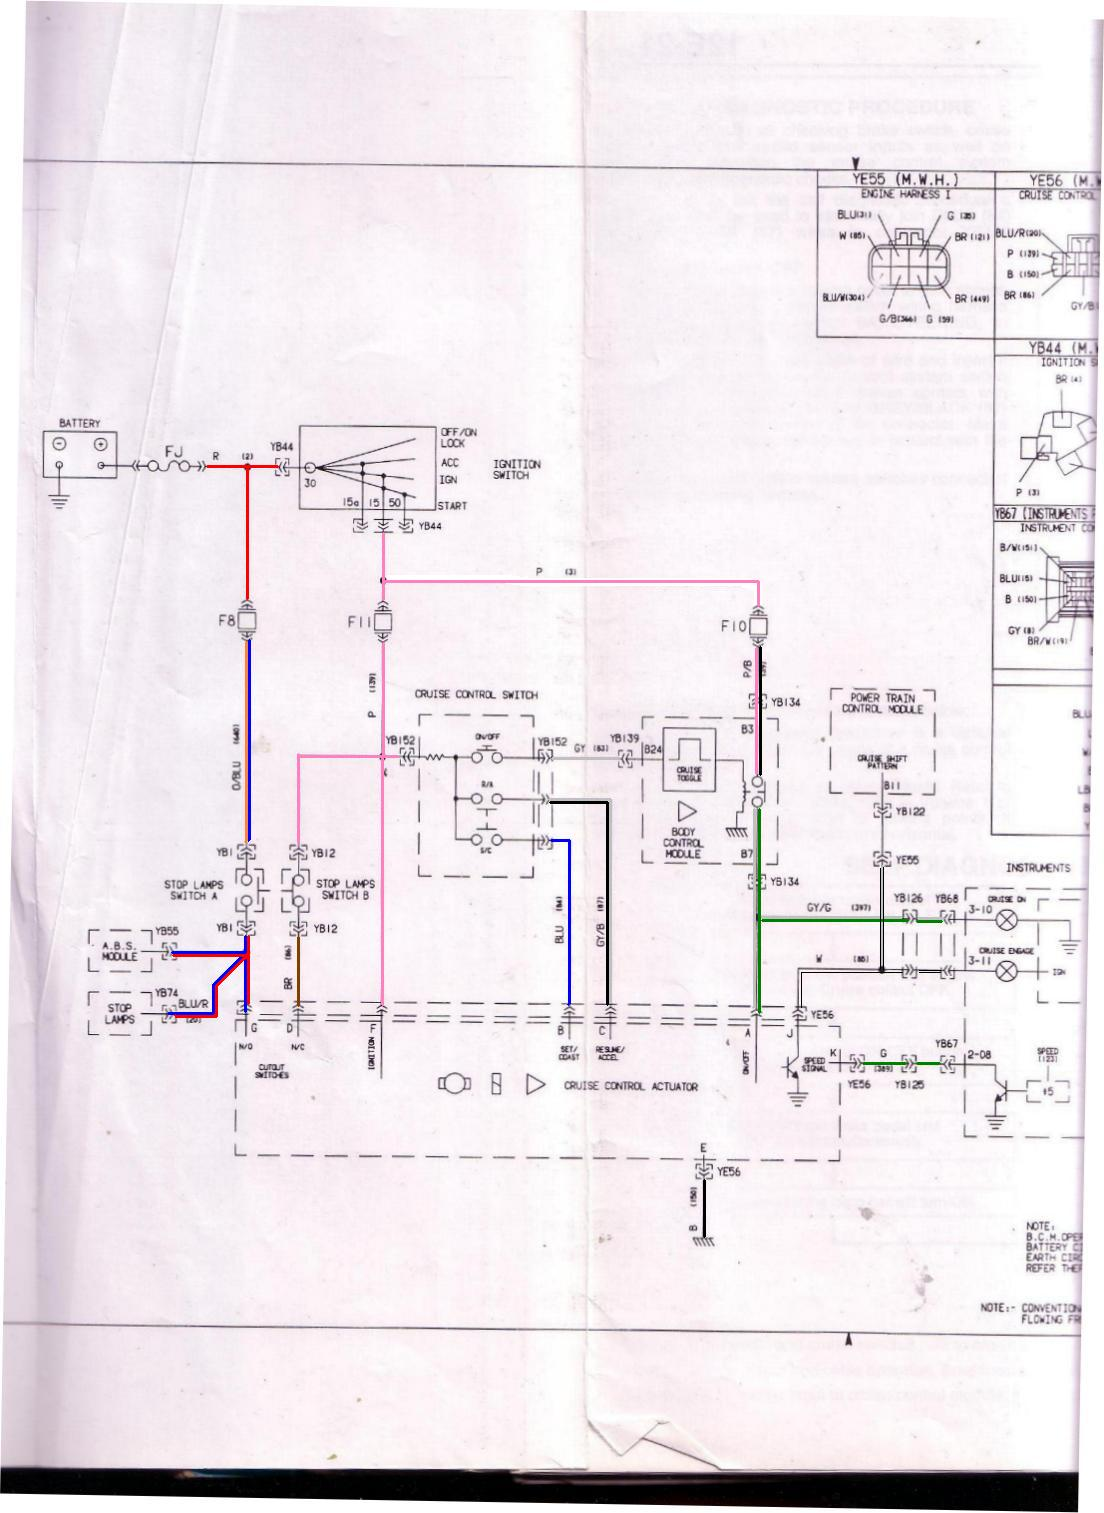 hight resolution of vn power window wiring diagram wiring diagram todaysvn power window wiring diagram simple wiring diagram 1977